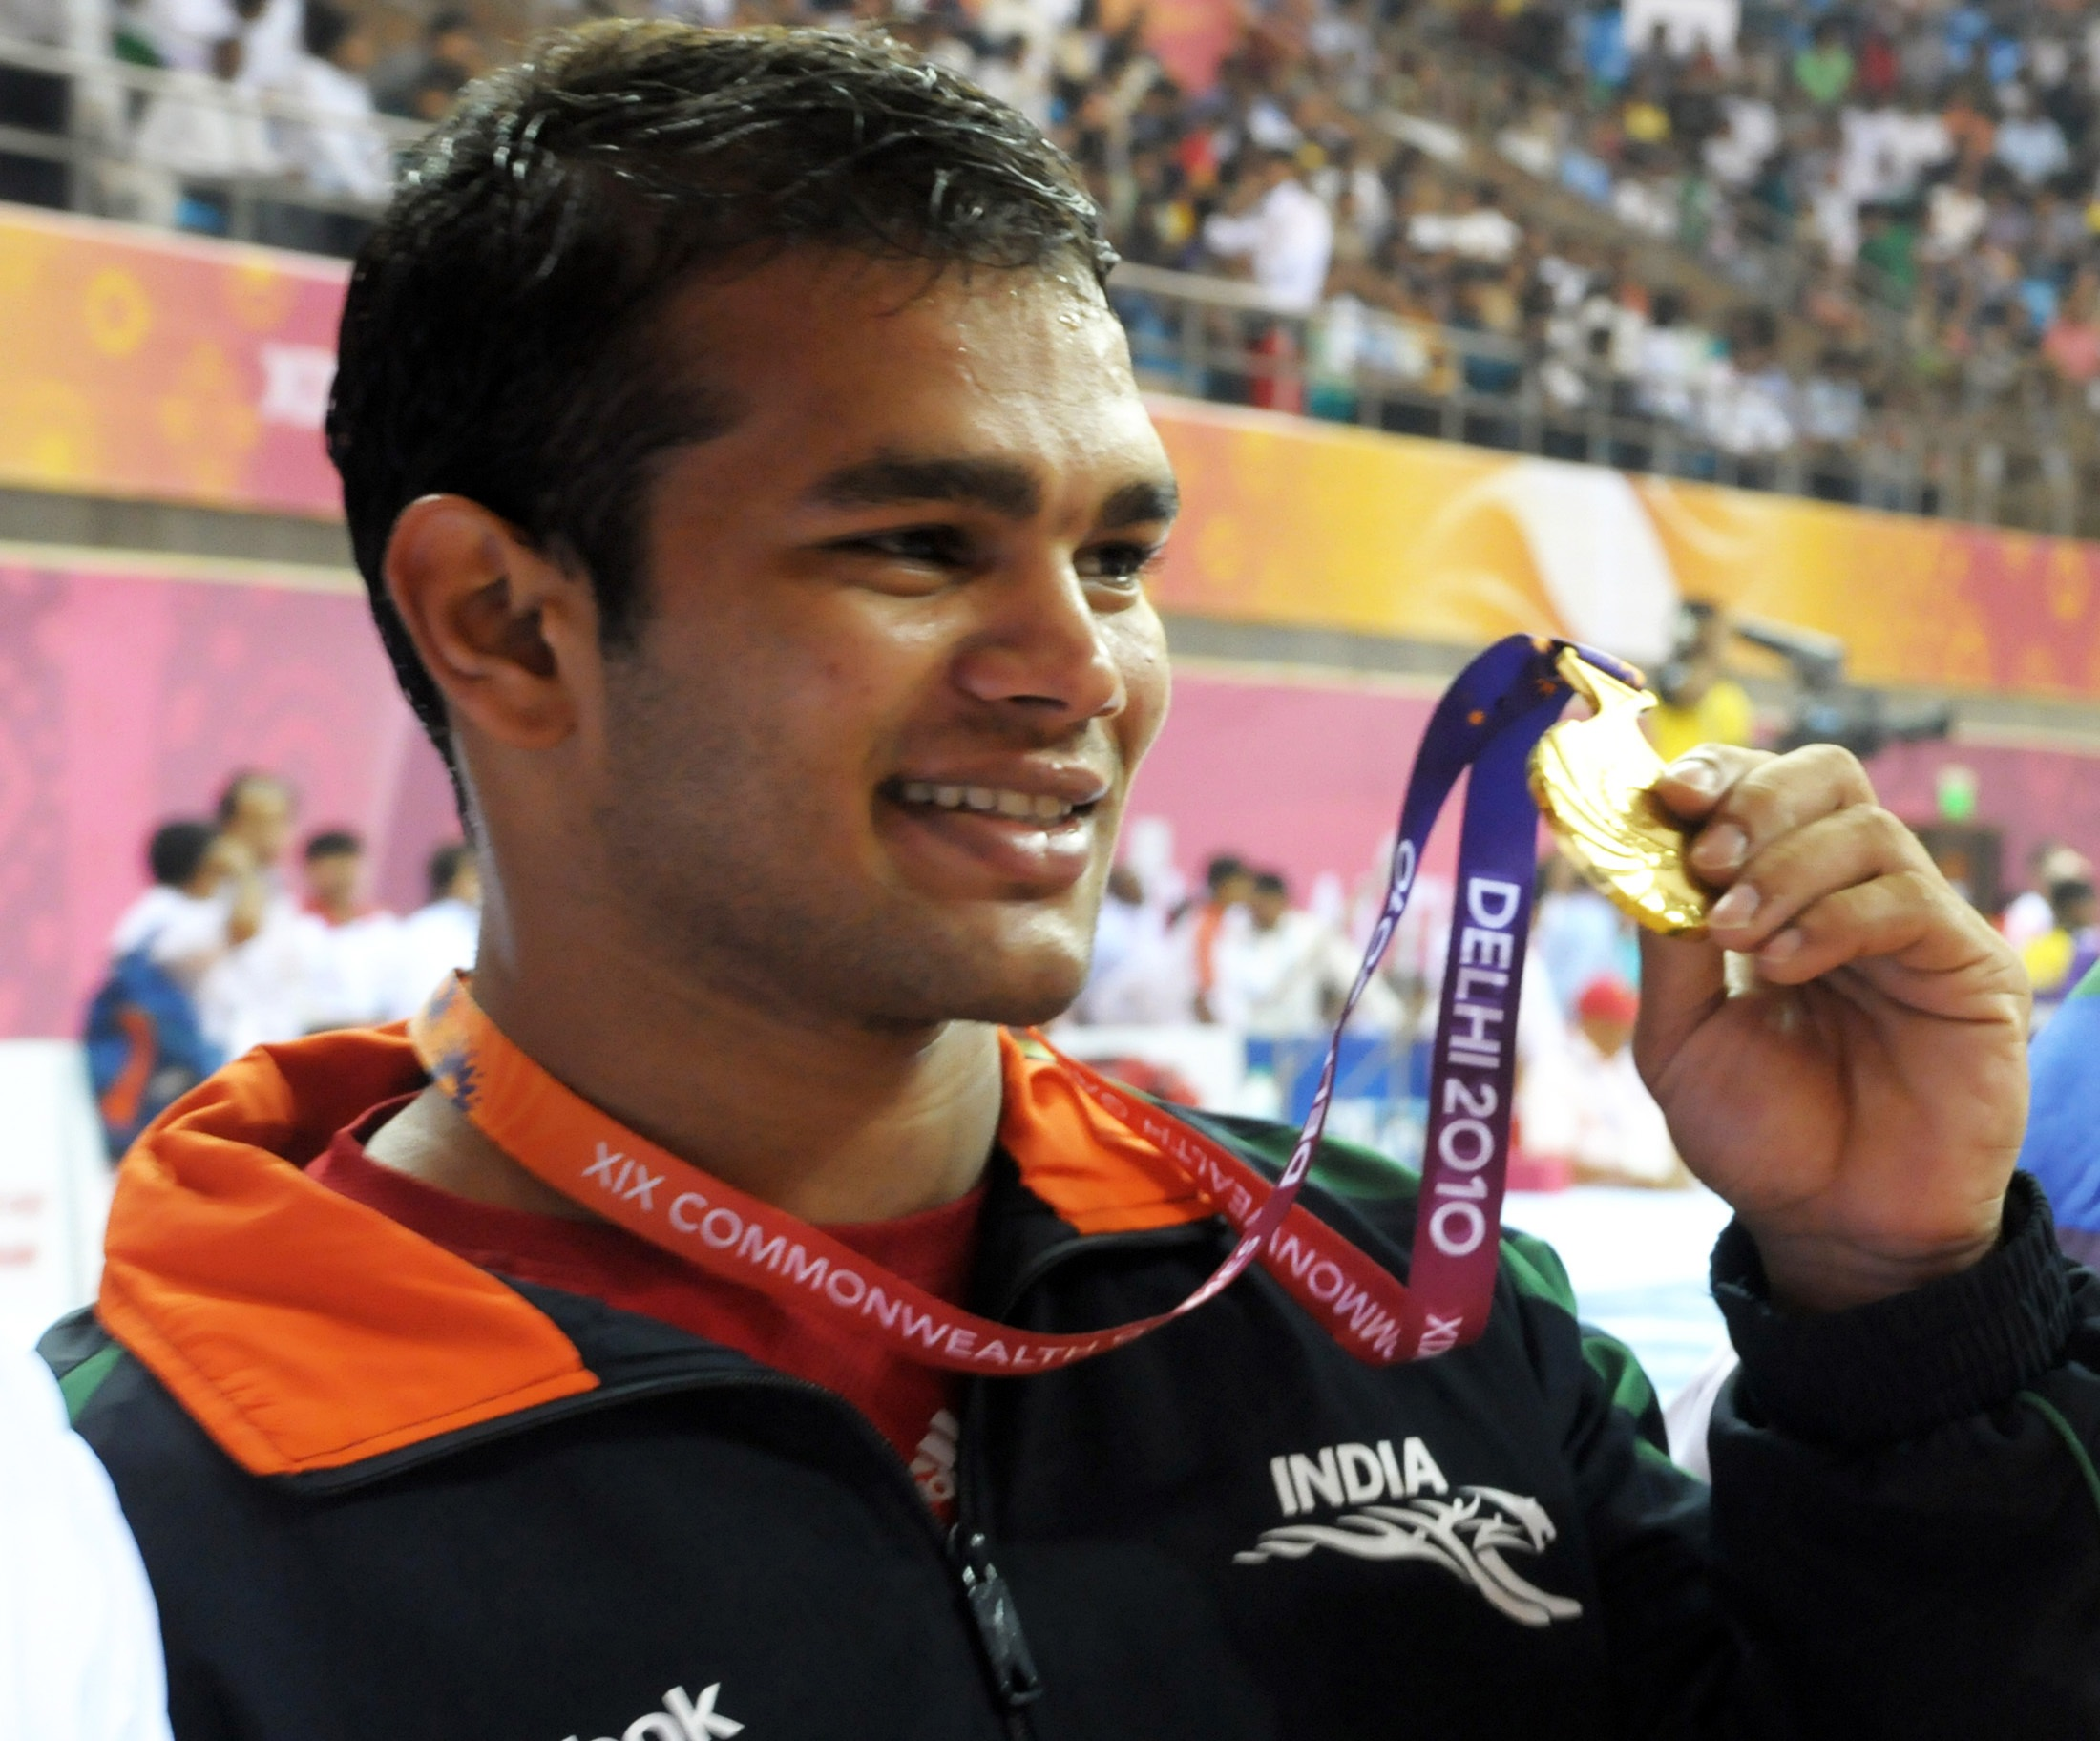 Wrestler Narsingh Yadav clears COVID-19 test set for World Cup in Serbia